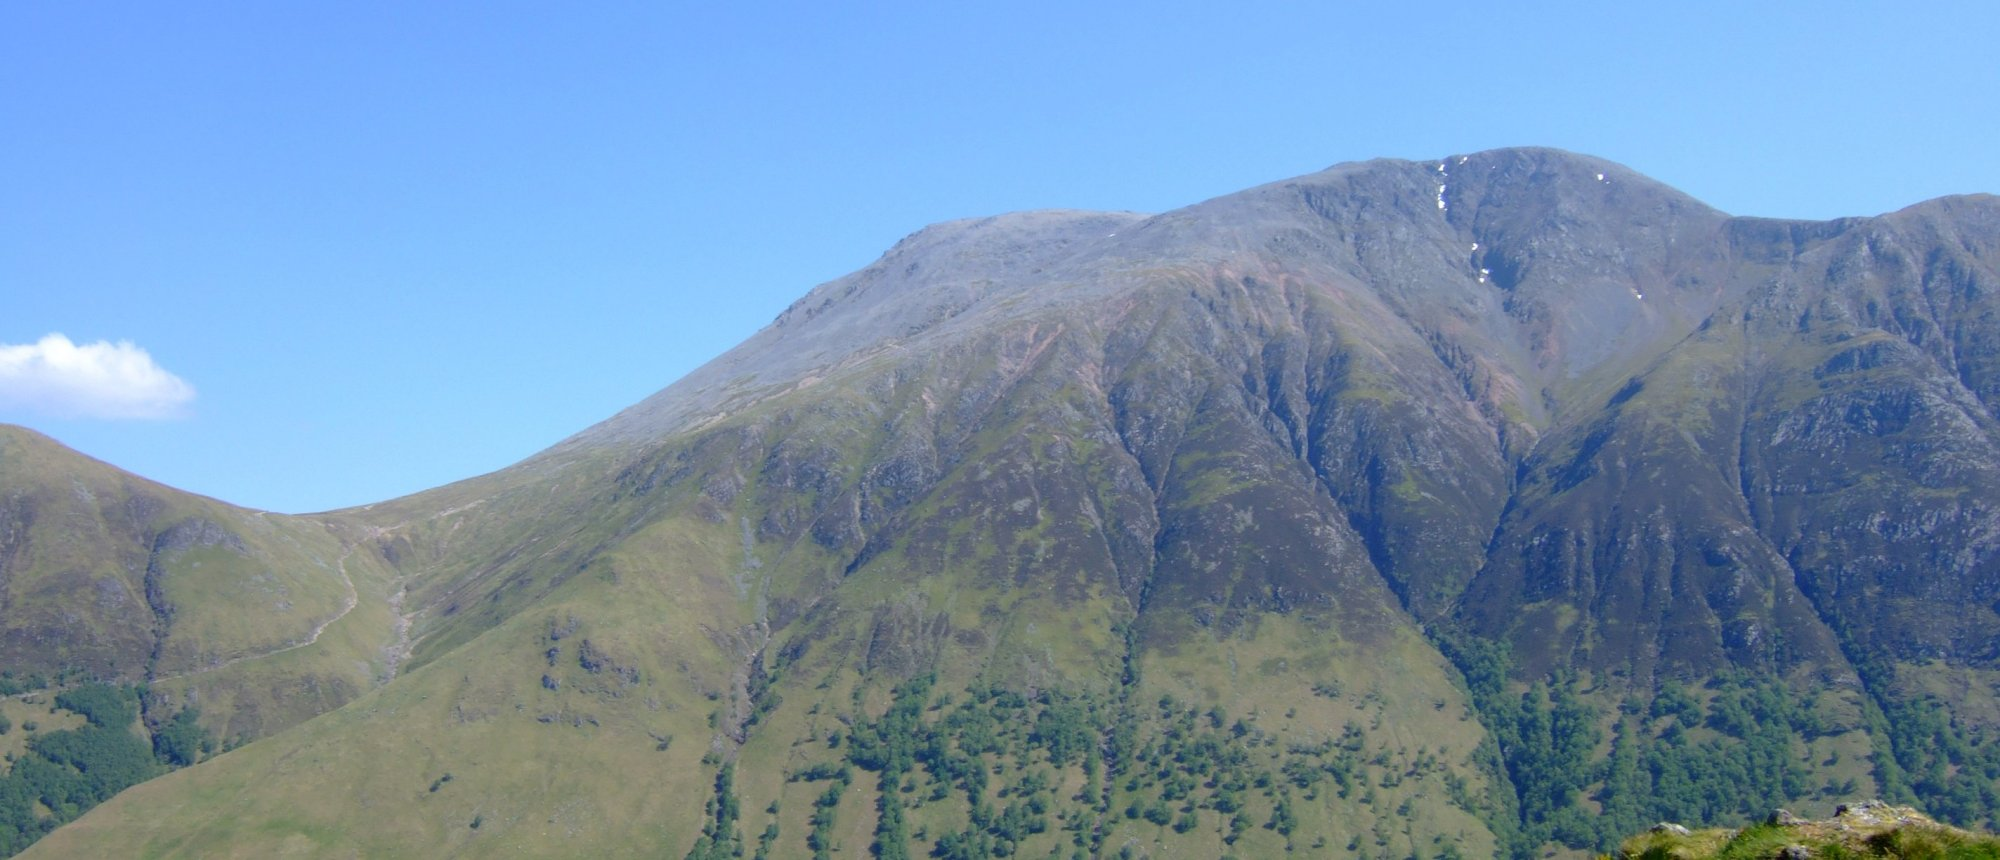 The view of Ben Nevis from Dun Raiding